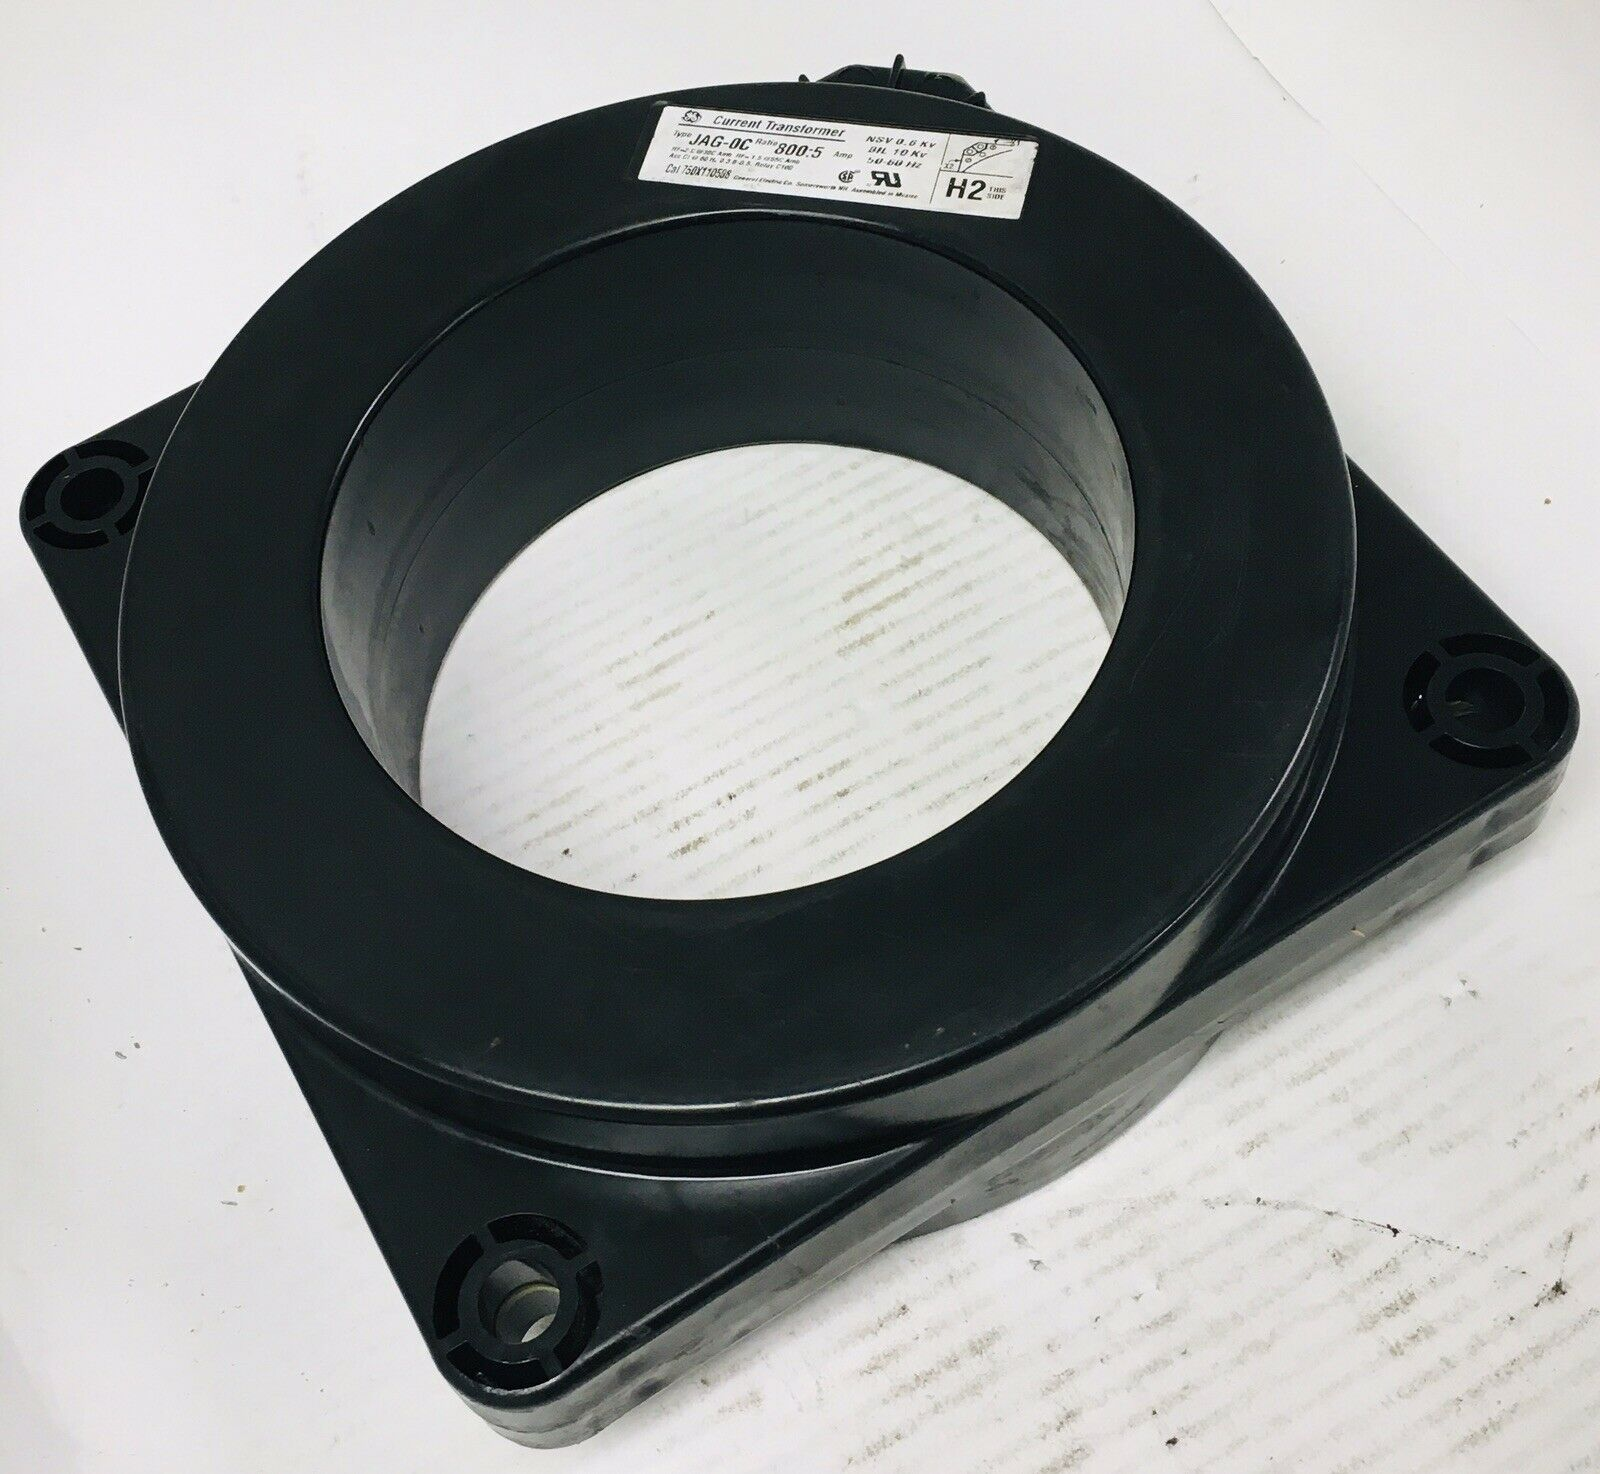 Details about  /GE Type JCT-0C 800:5 Amps 750X123208 10 kV Current Transformer